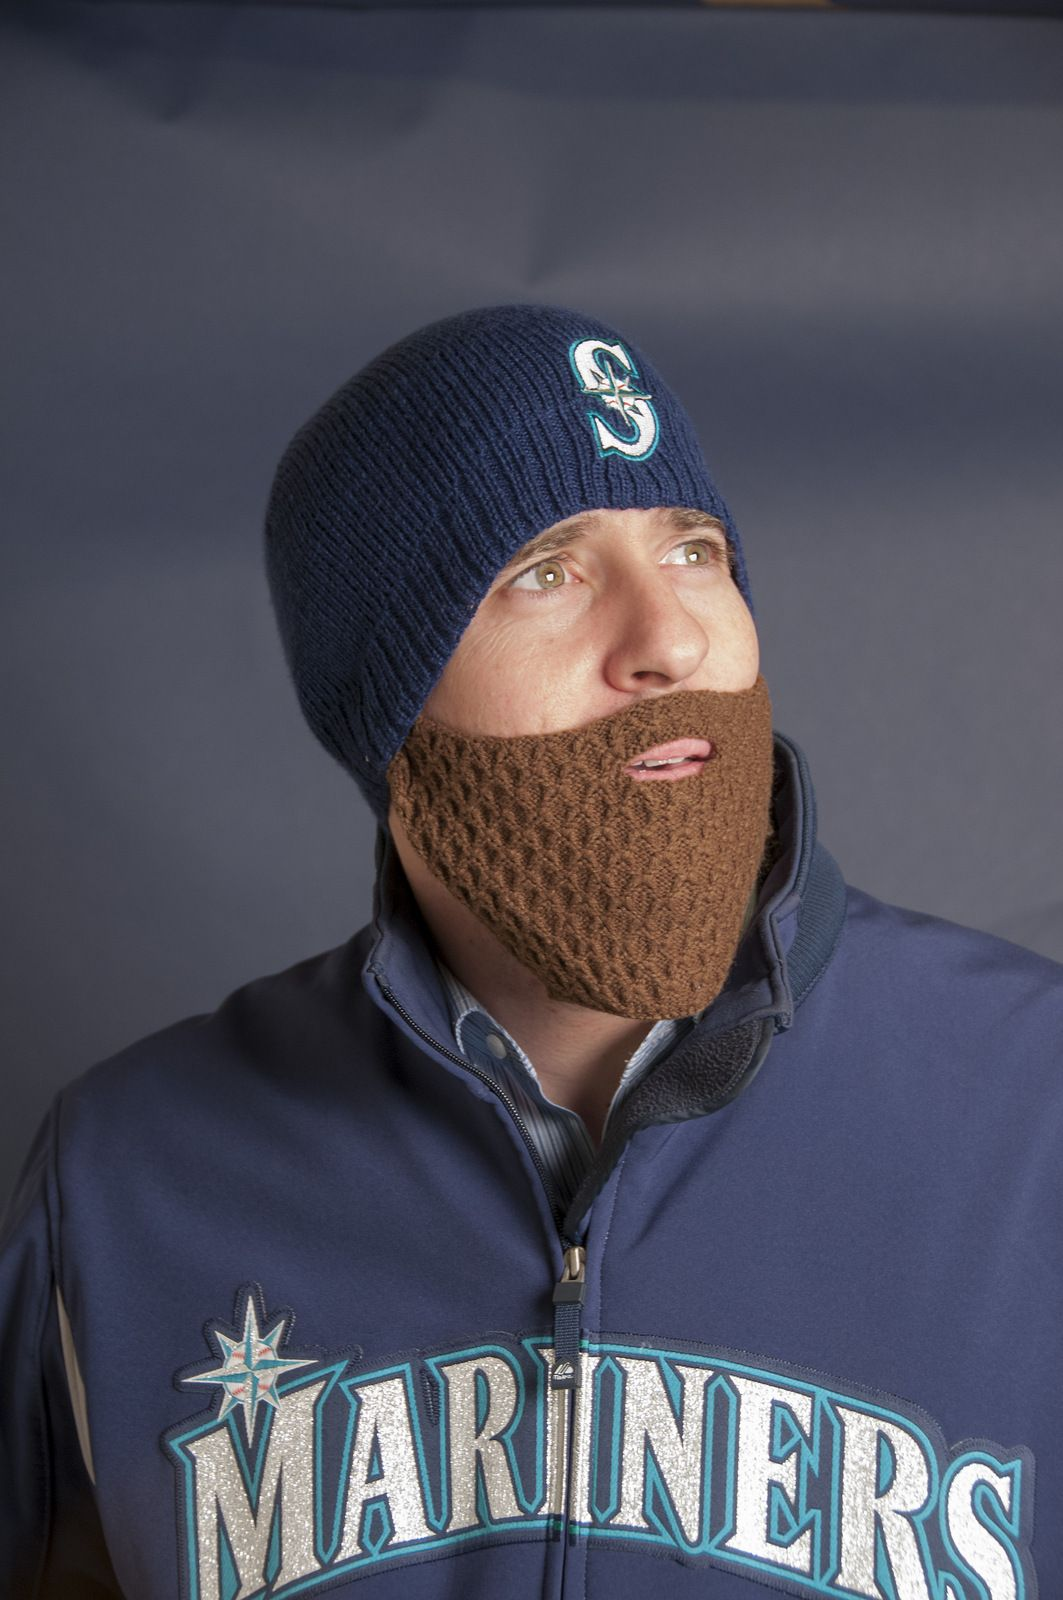 467c0a16 Mariners Beard Hat Night. First 20,000 fans. Friday, 4/26/13, 7:10 ...